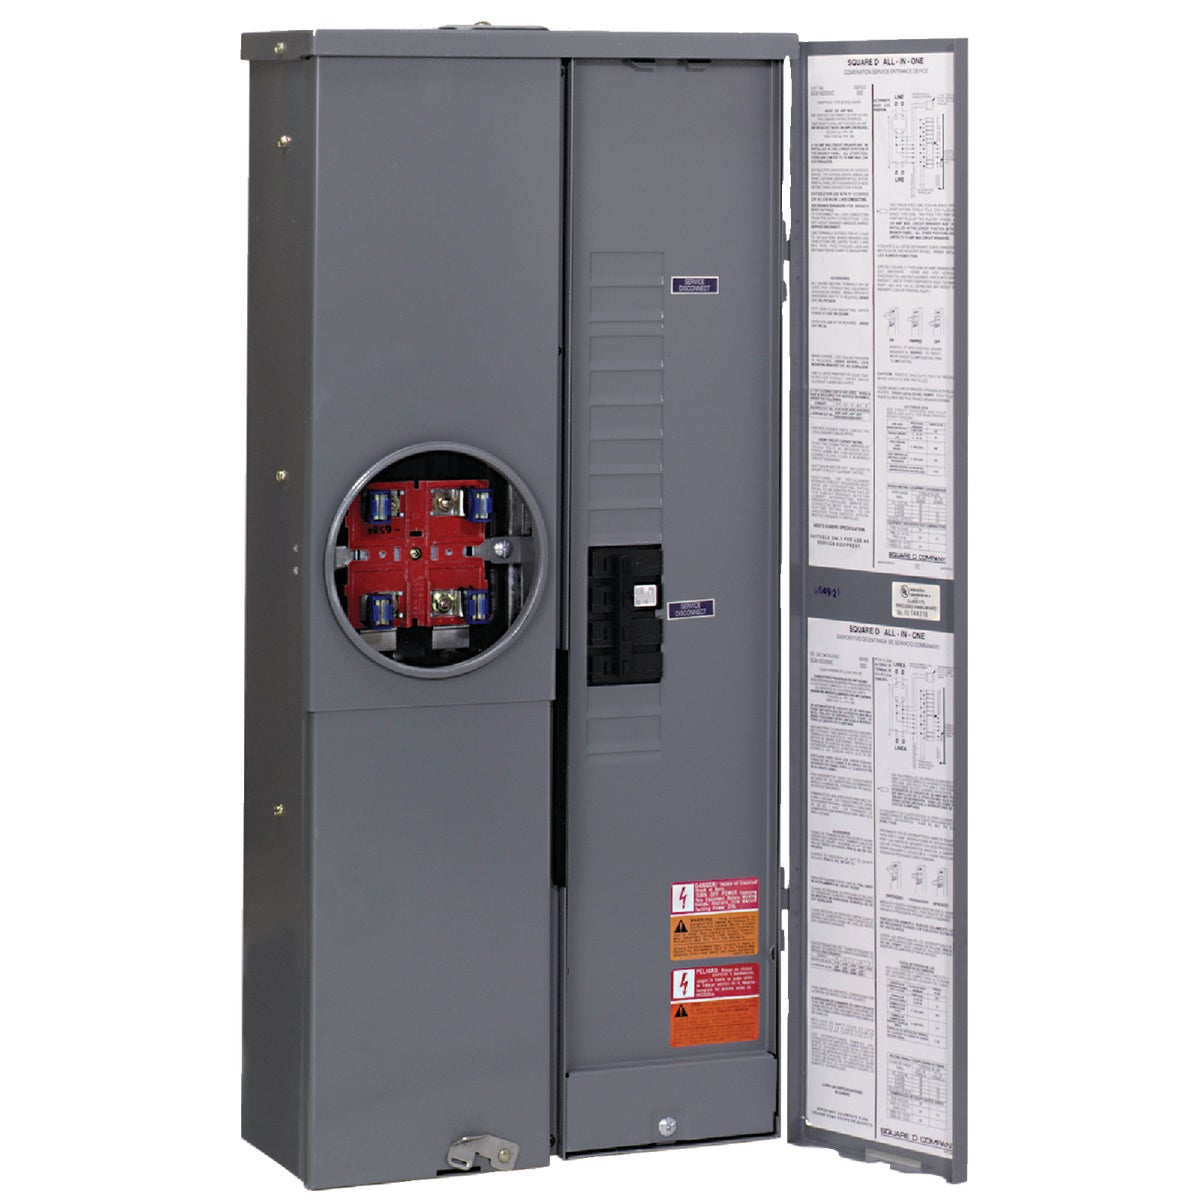 200A METER BREAKER PANEL - SC816F200S by Square D Co